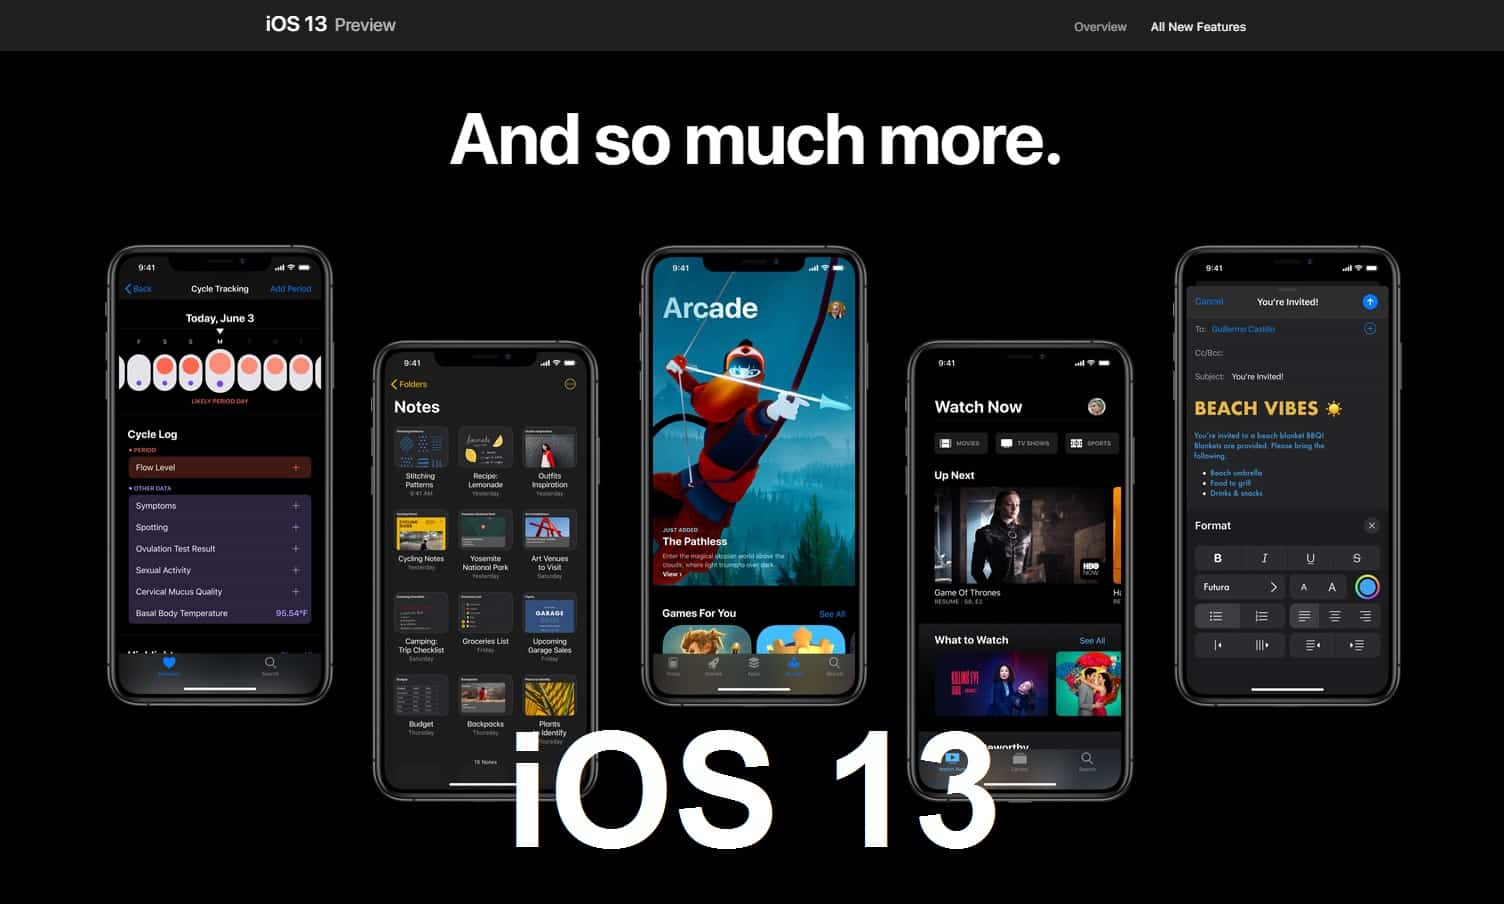 Be careful when upgrading to iOS 13… Problems may arise